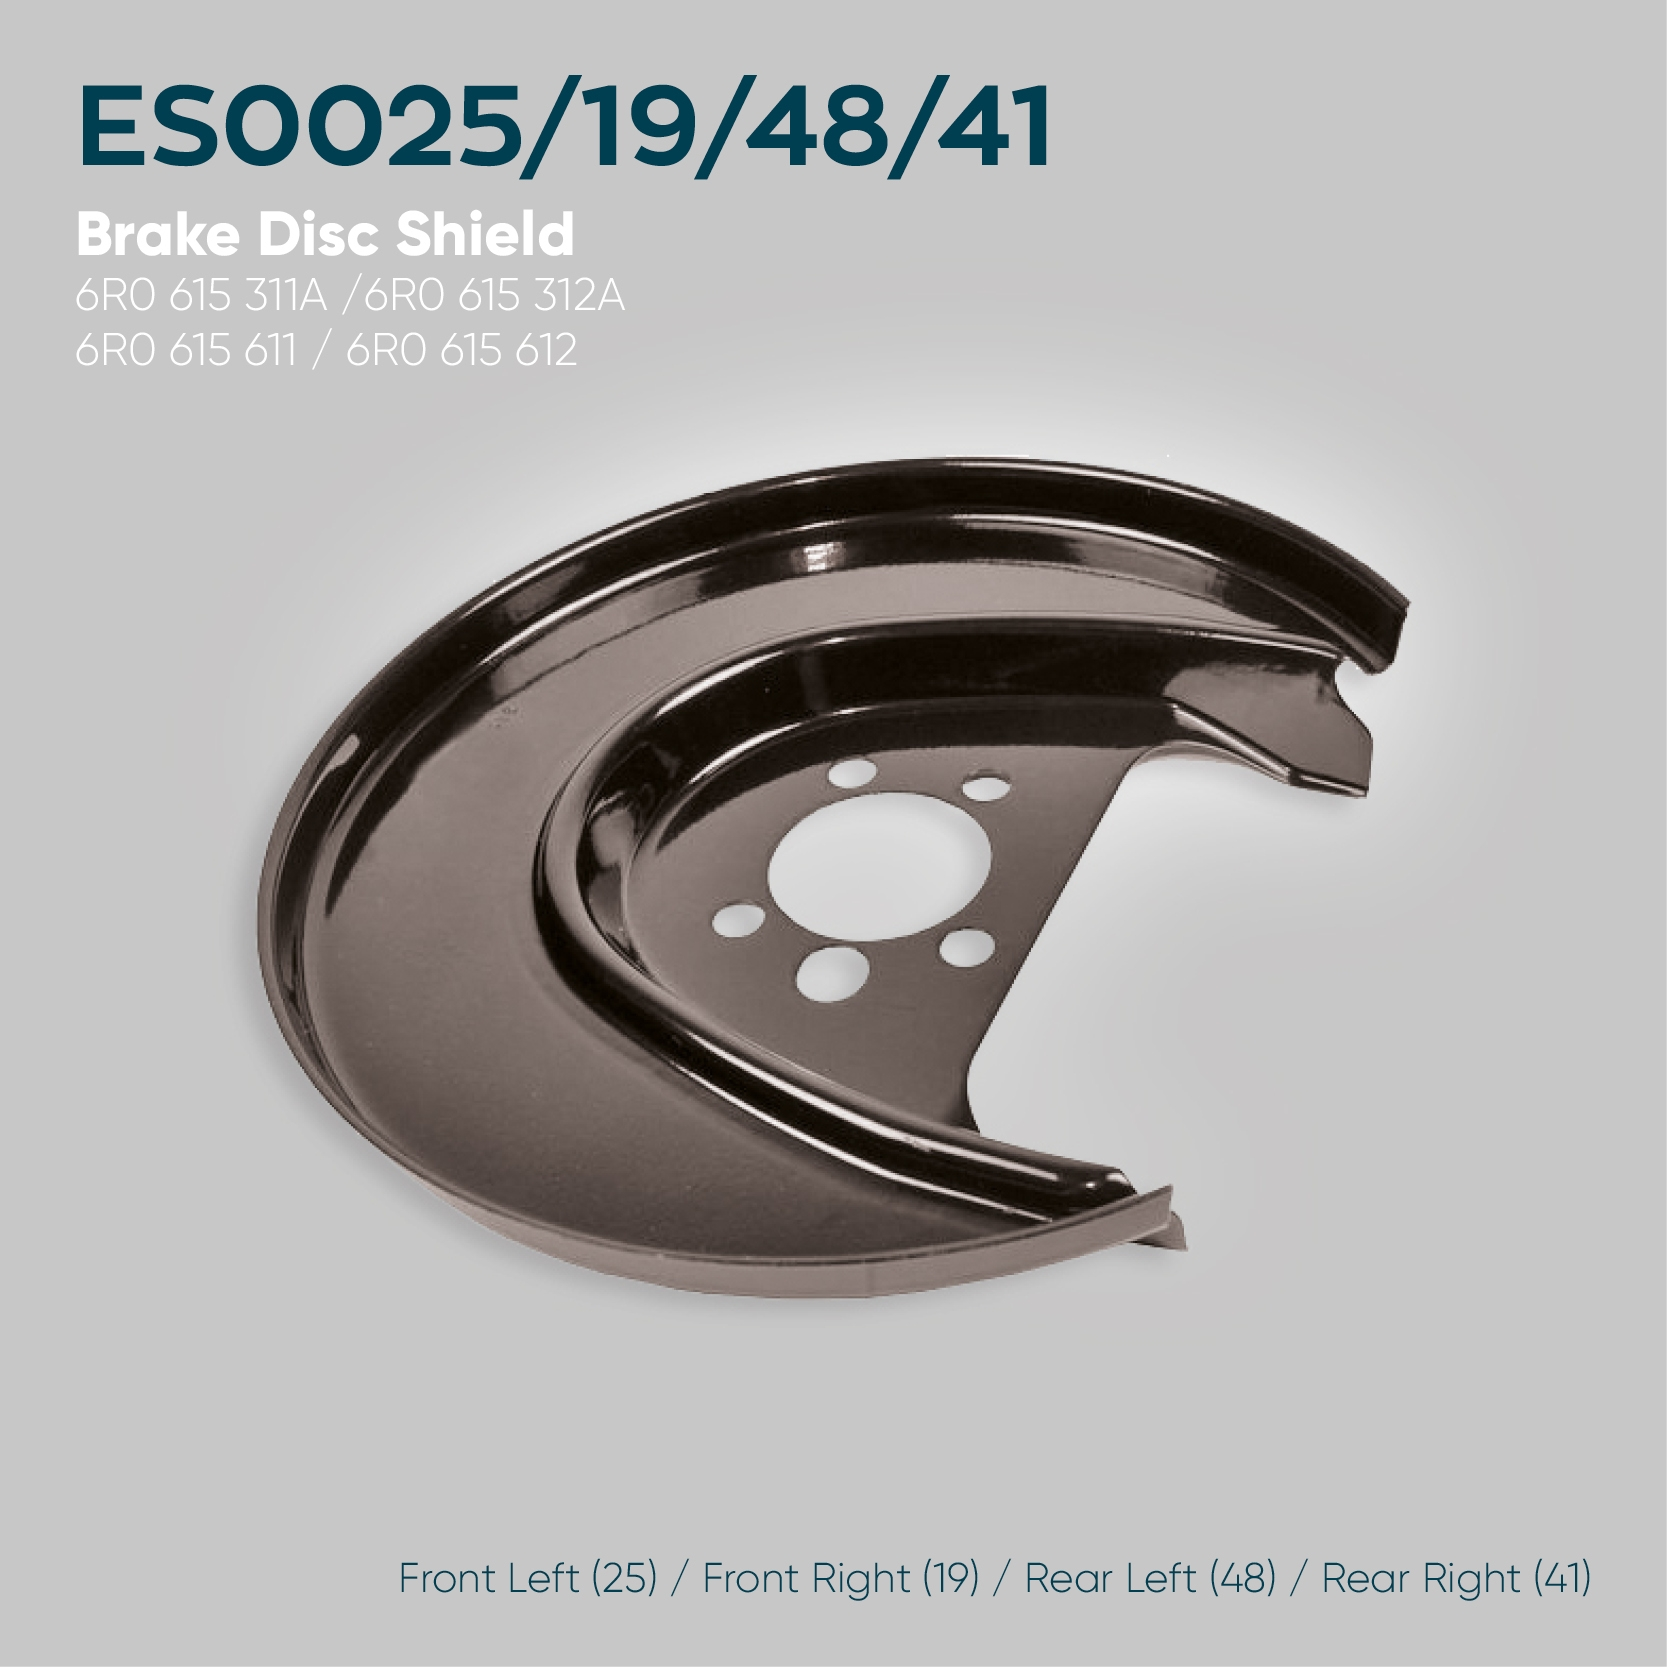 Audi A1 Brake Disc Shield